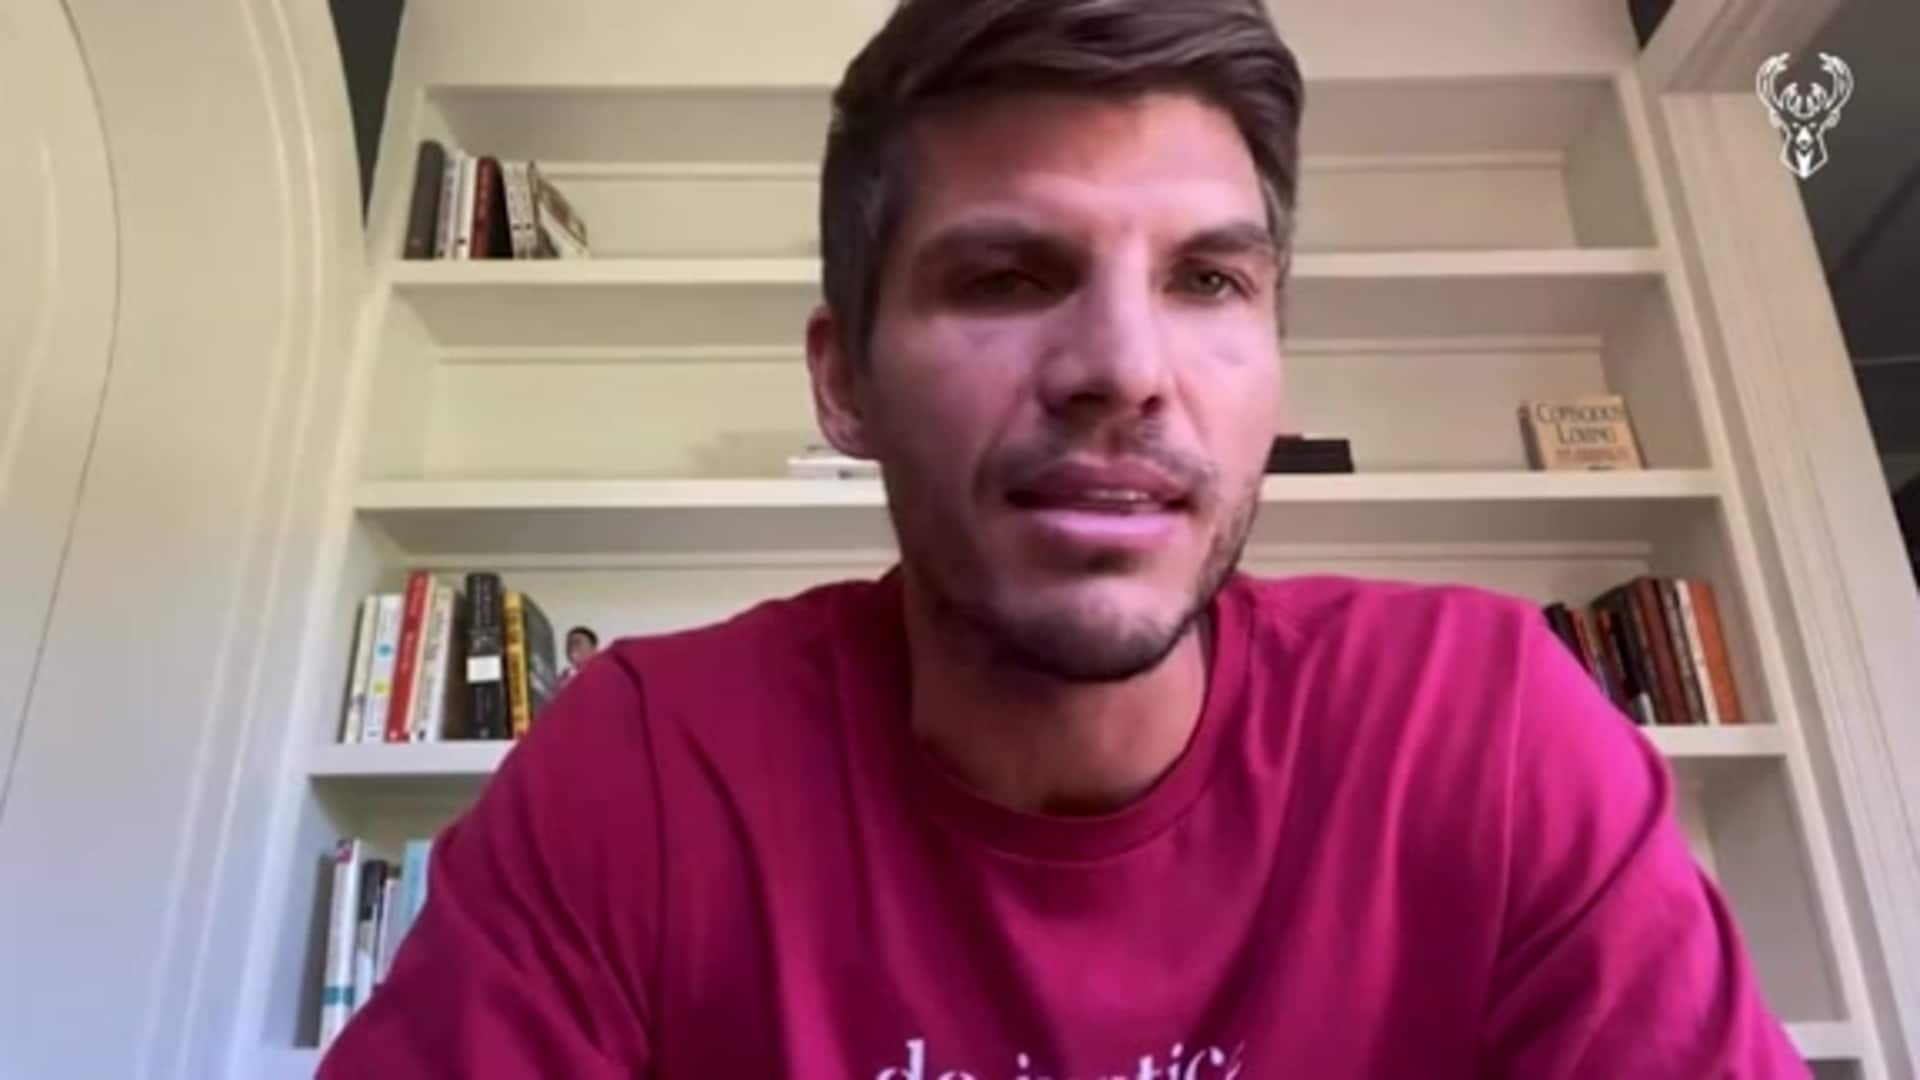 Kyle Korver: I Am Pumped Up To Vote